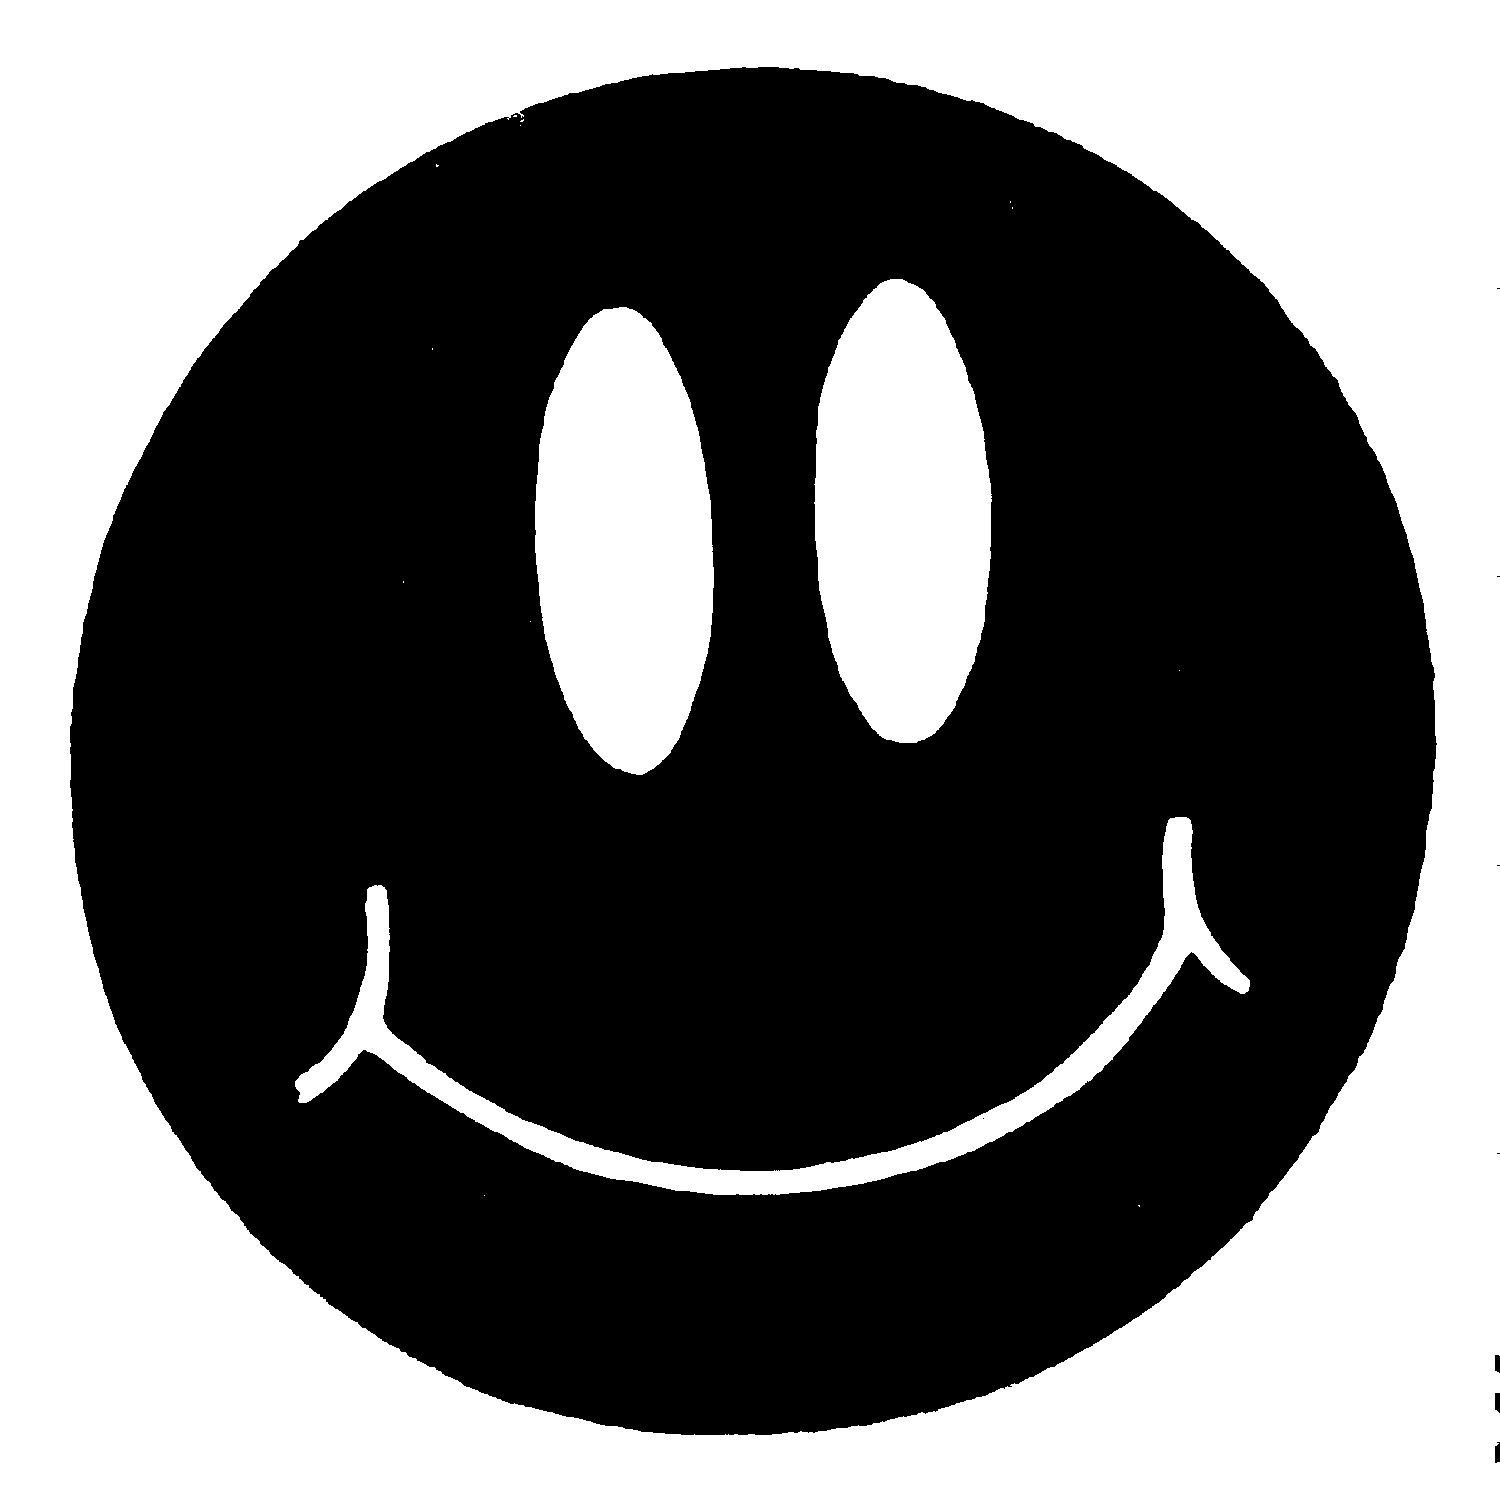 Free Smiley Face Black And White, Download Free Clip Art, Free Clip